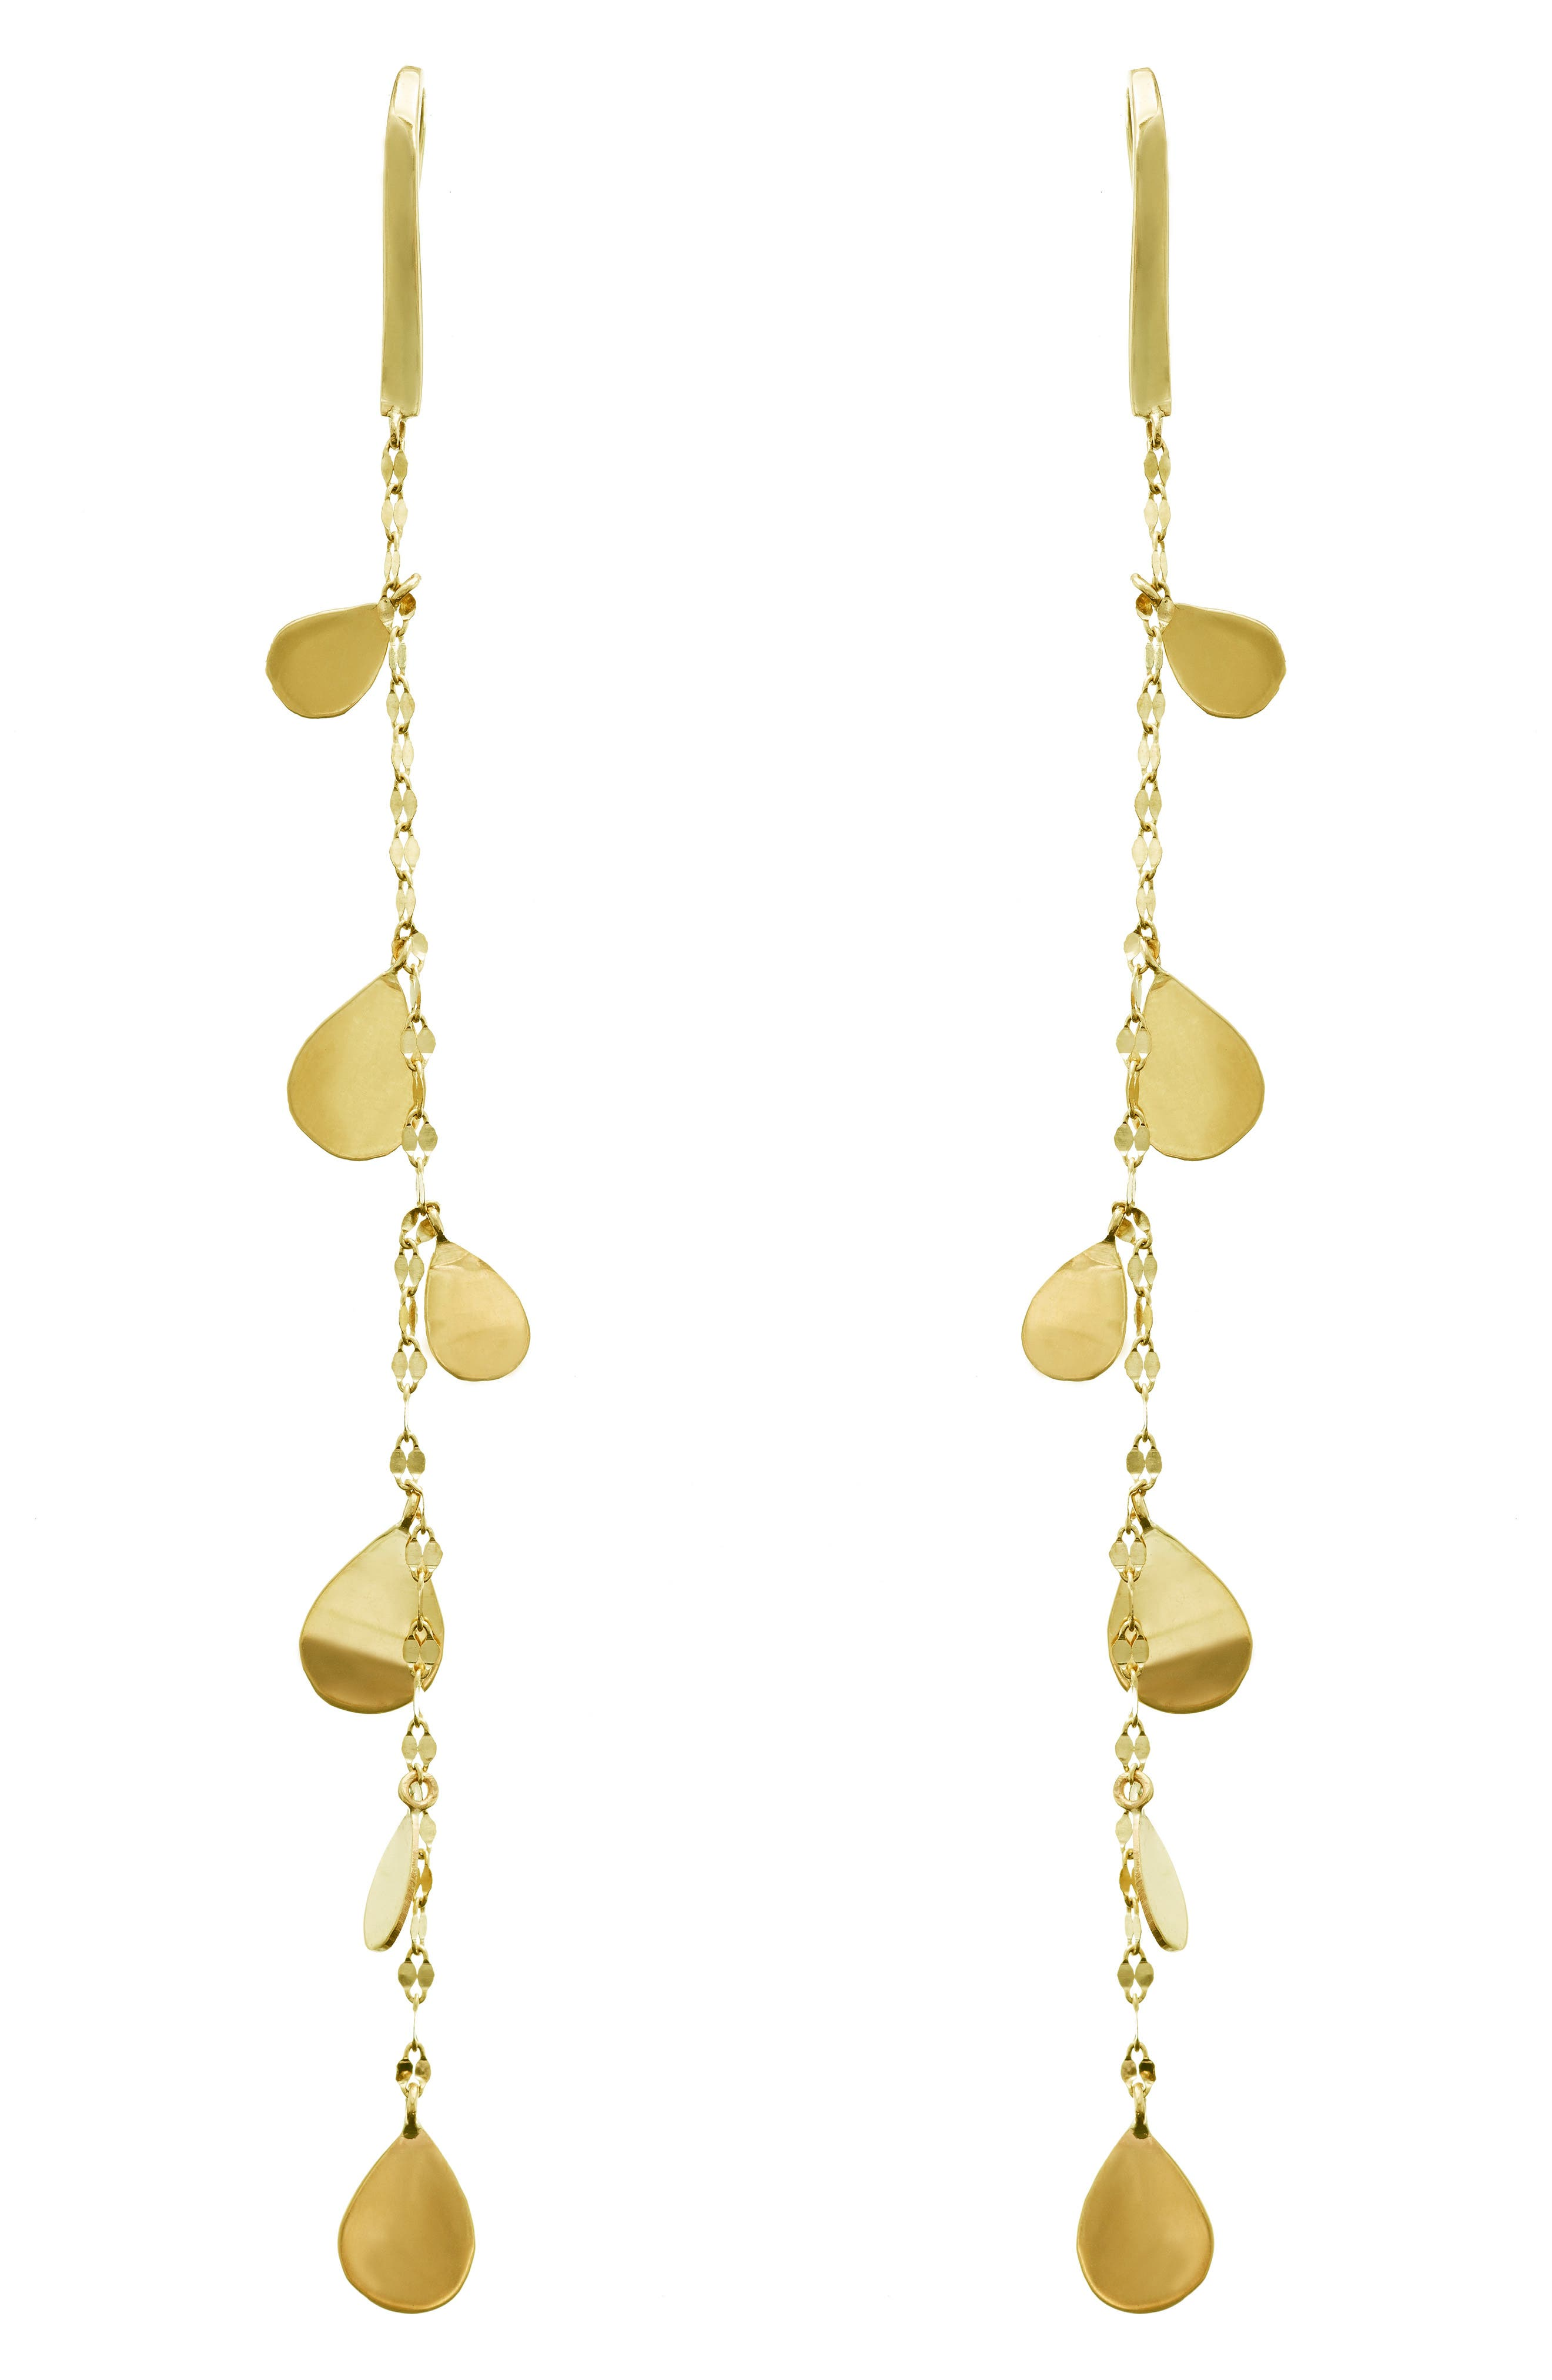 Lana Jewelry Teardrop Linear Drop Earrings